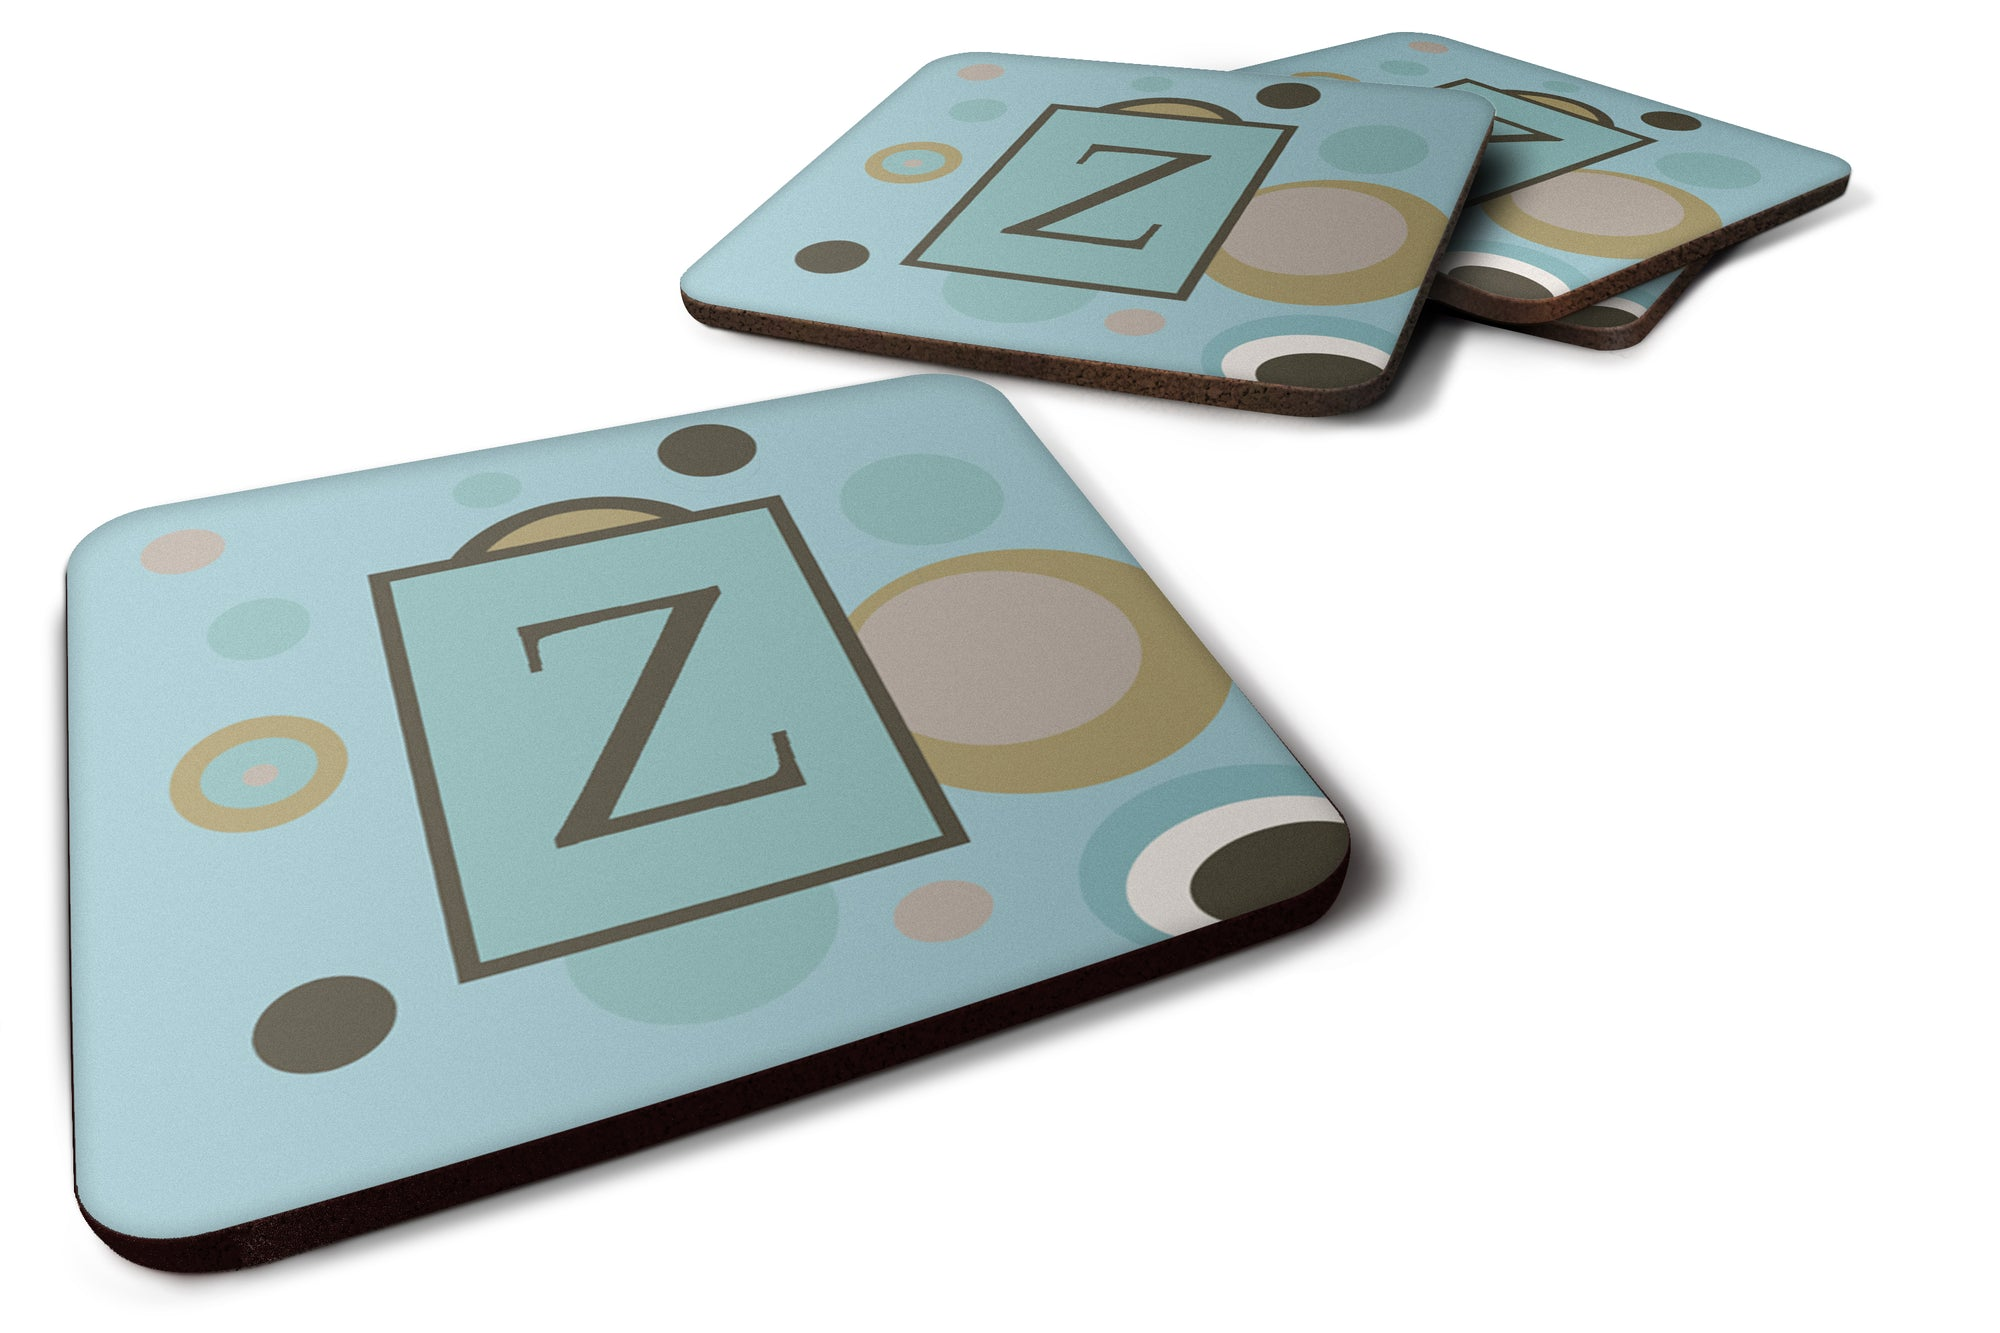 Set of 4 Monogram - Blue Dots Foam Coasters Initial Letter Z by Caroline's Treasures